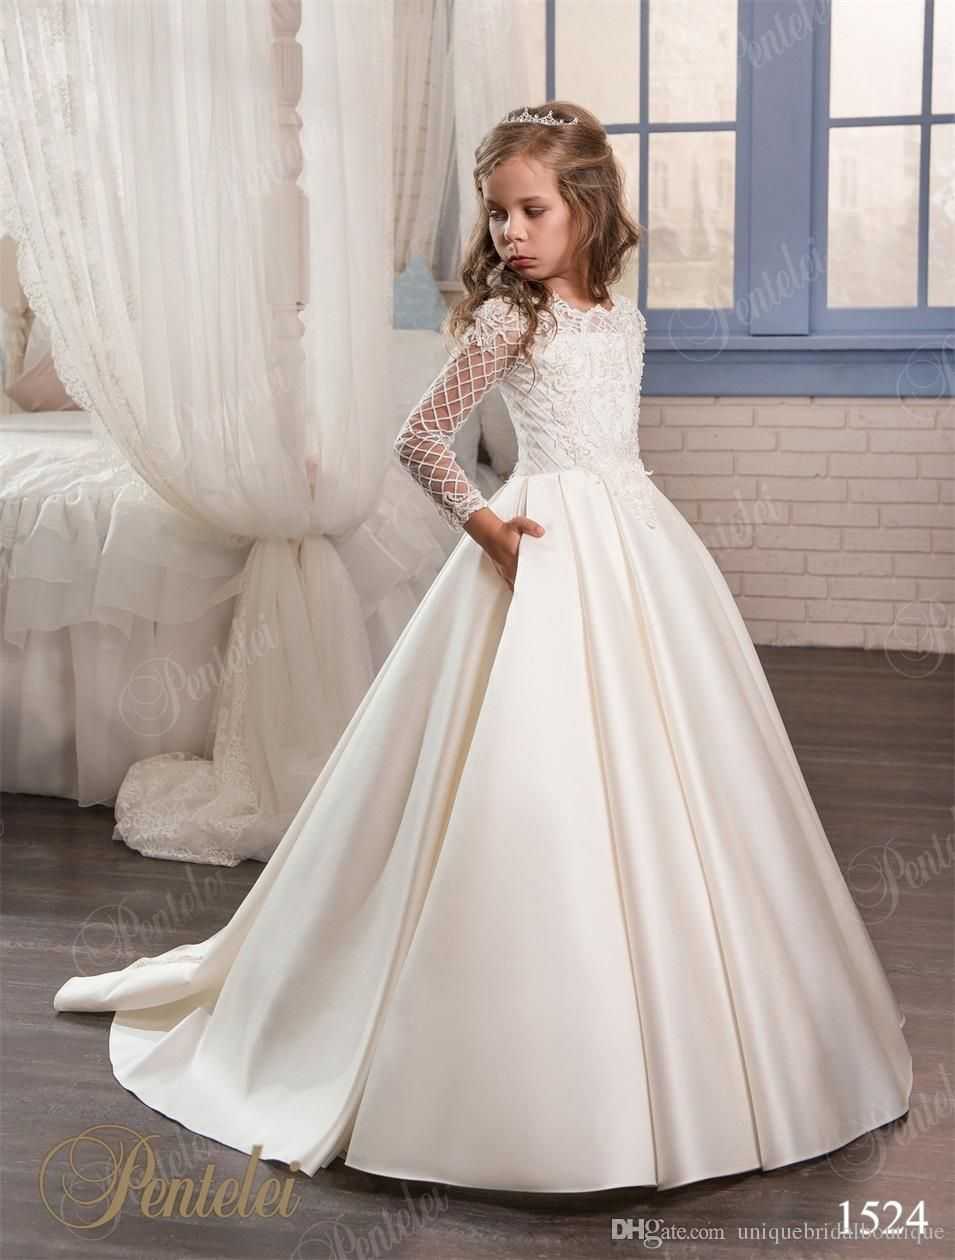 Wedding dresses for little girls 2017 pentelei cheap with for Dresses for teenagers for weddings